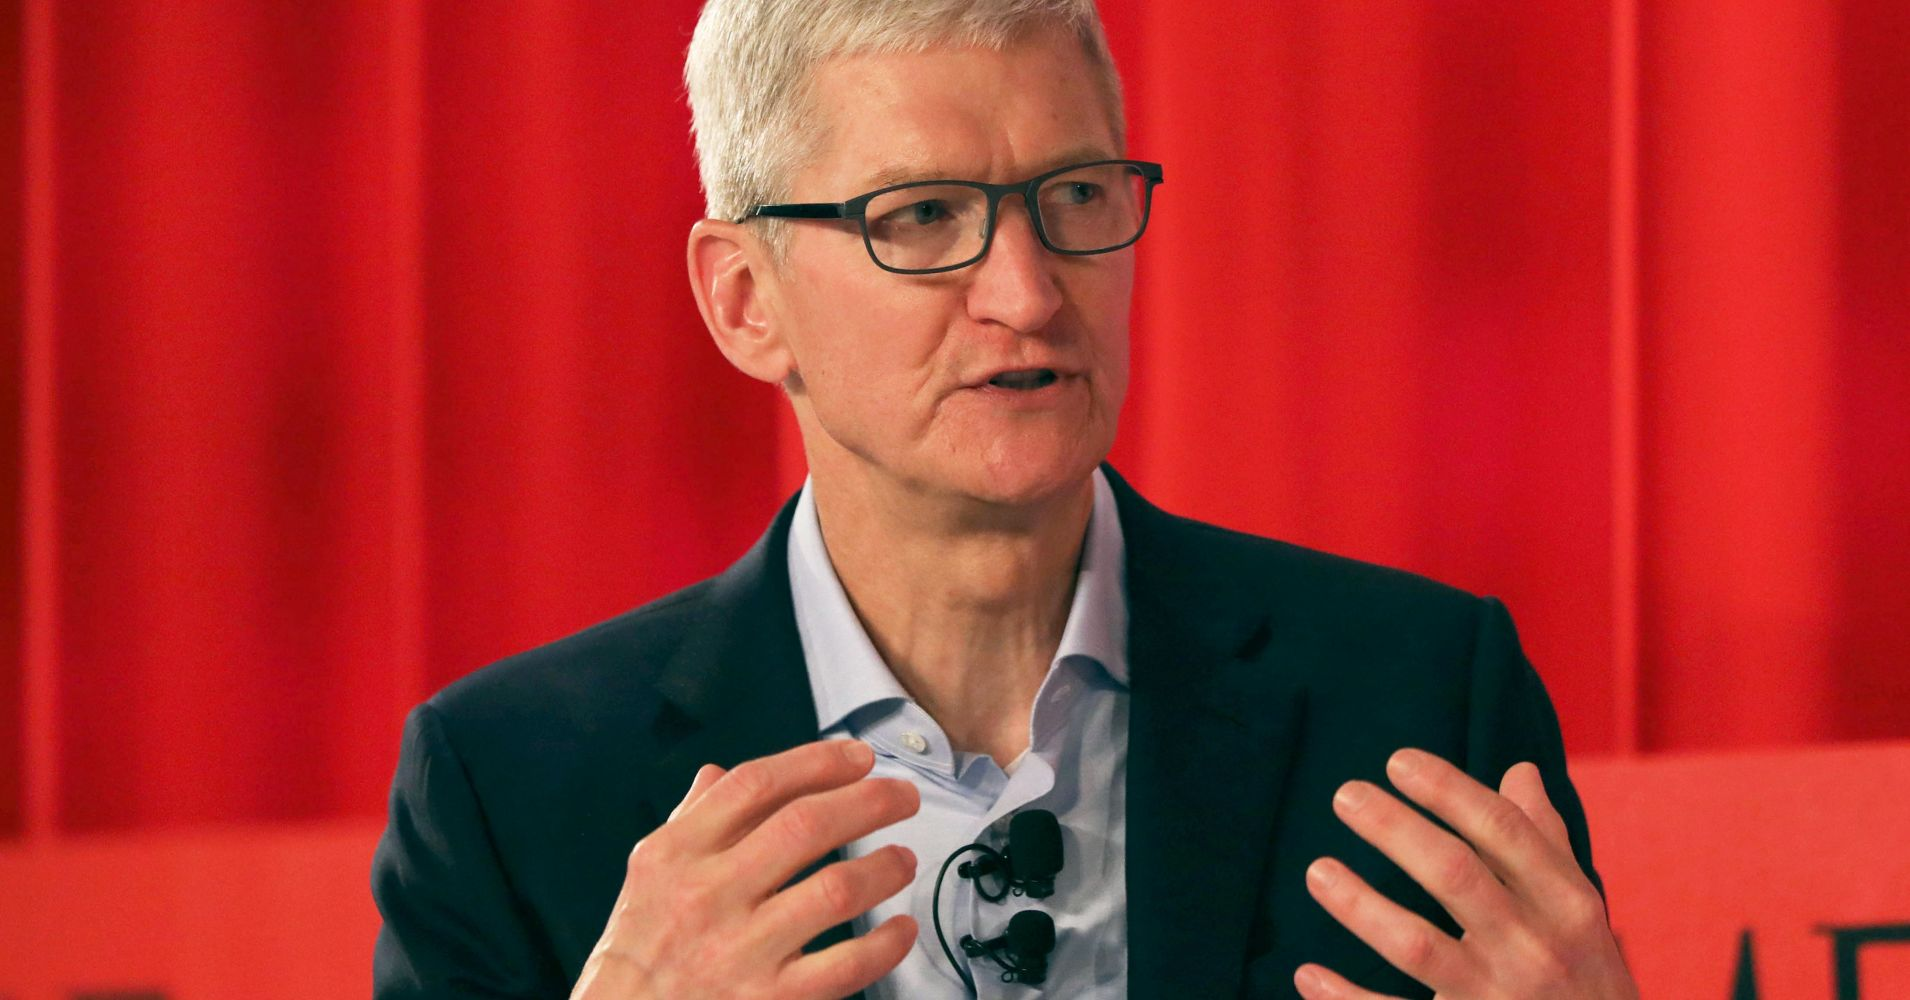 Apple CEO Tim Cook speaks at the TIME 100 Summit on April 23, 2019 in New York City.